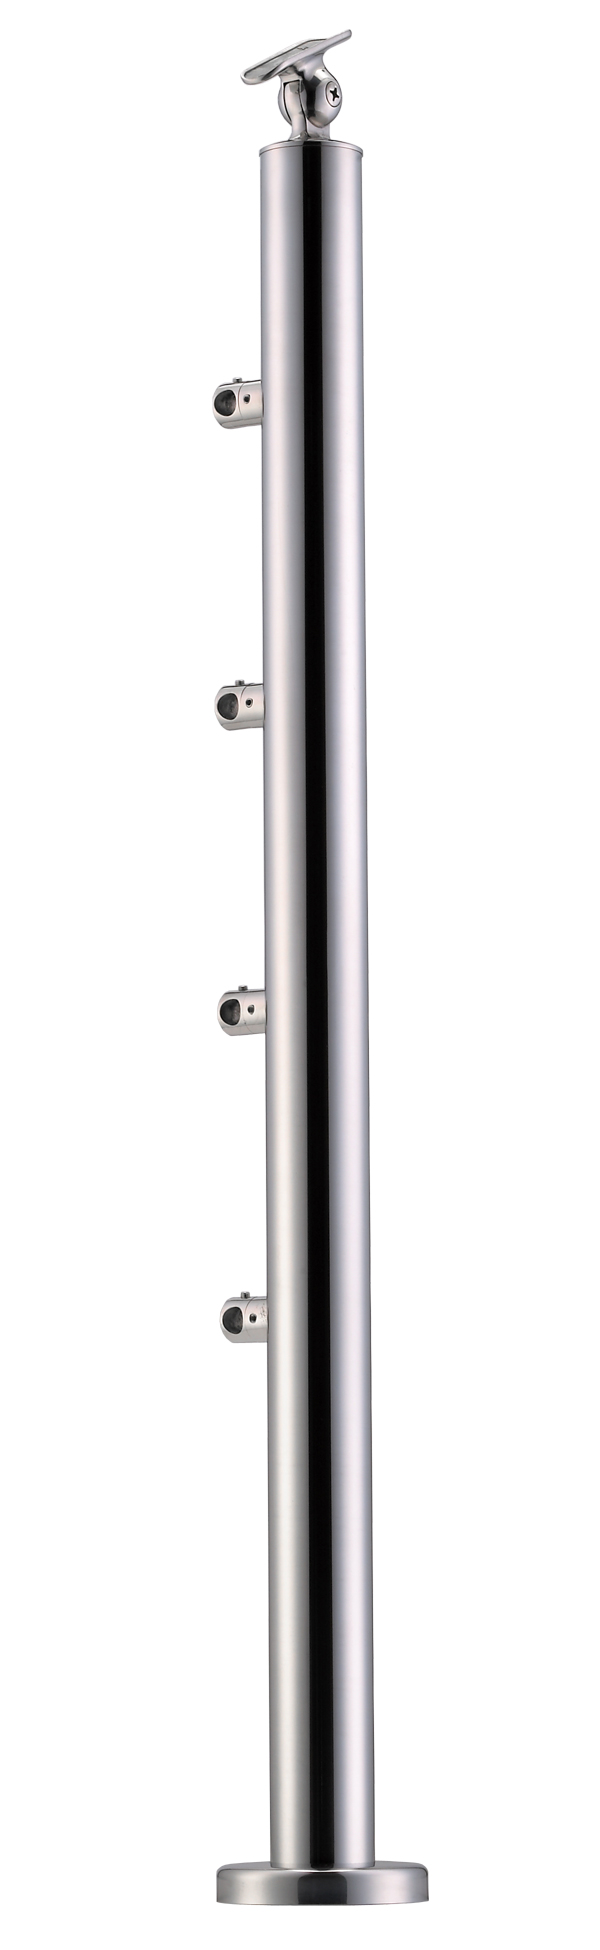 Stainless Steel Balustrade Posts - Tubular - SS:2020457A